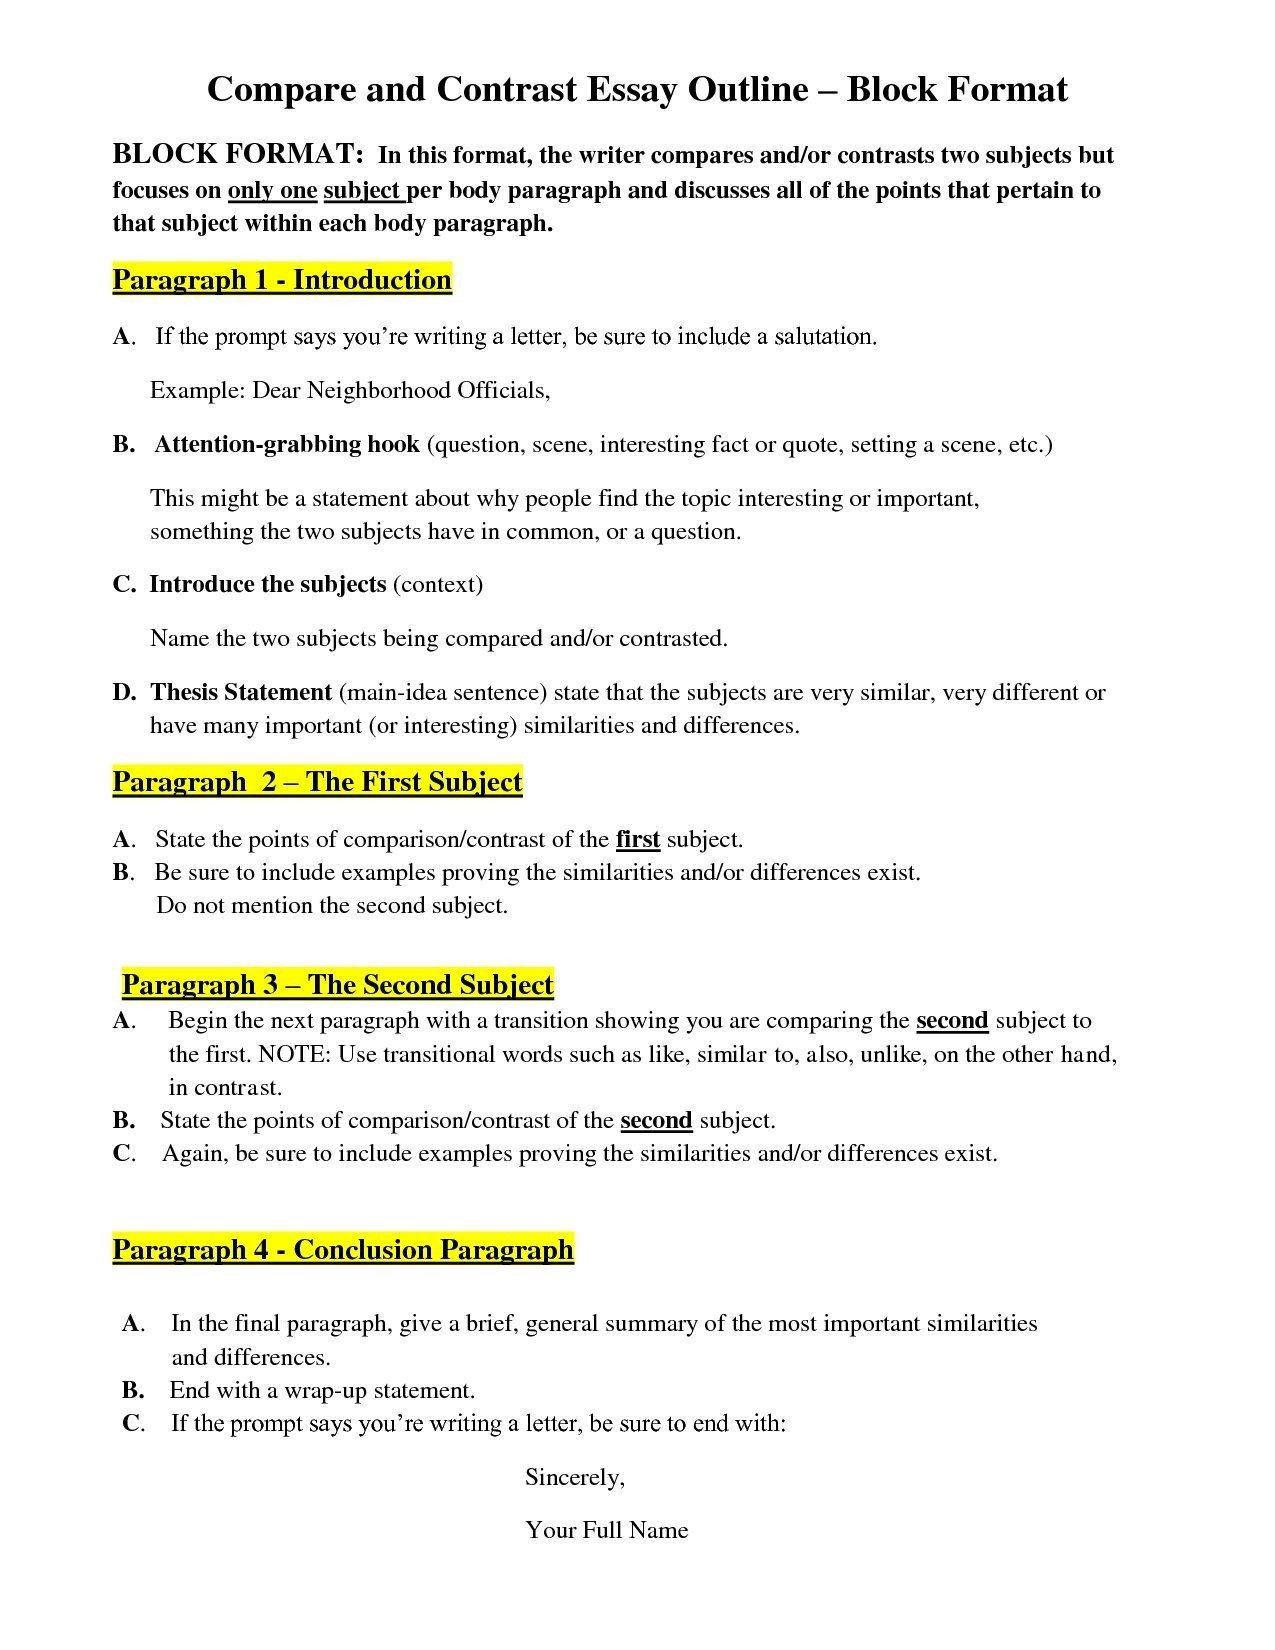 014 Essay Examplempare Andntrastmparison Best Examples Of Scenario In 6th Grade An Goo 3rd Food 5th Middle School Block Format Pdf High 4th Vs Striking Compare And Contrast Example 7th Comparison Free Elementary Full